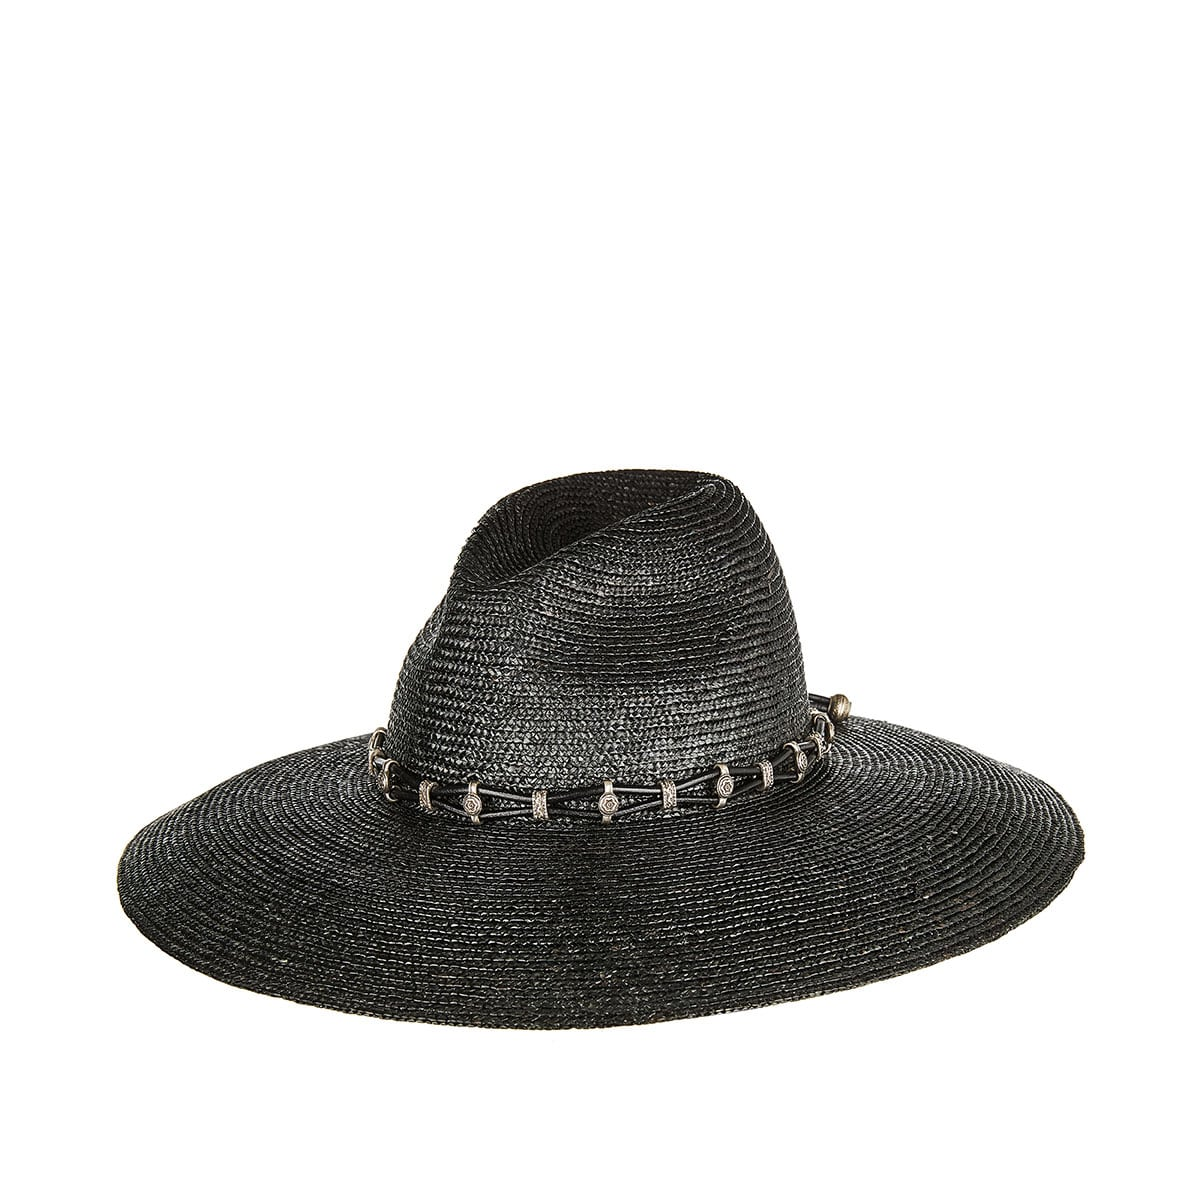 Embellished straw Western hat